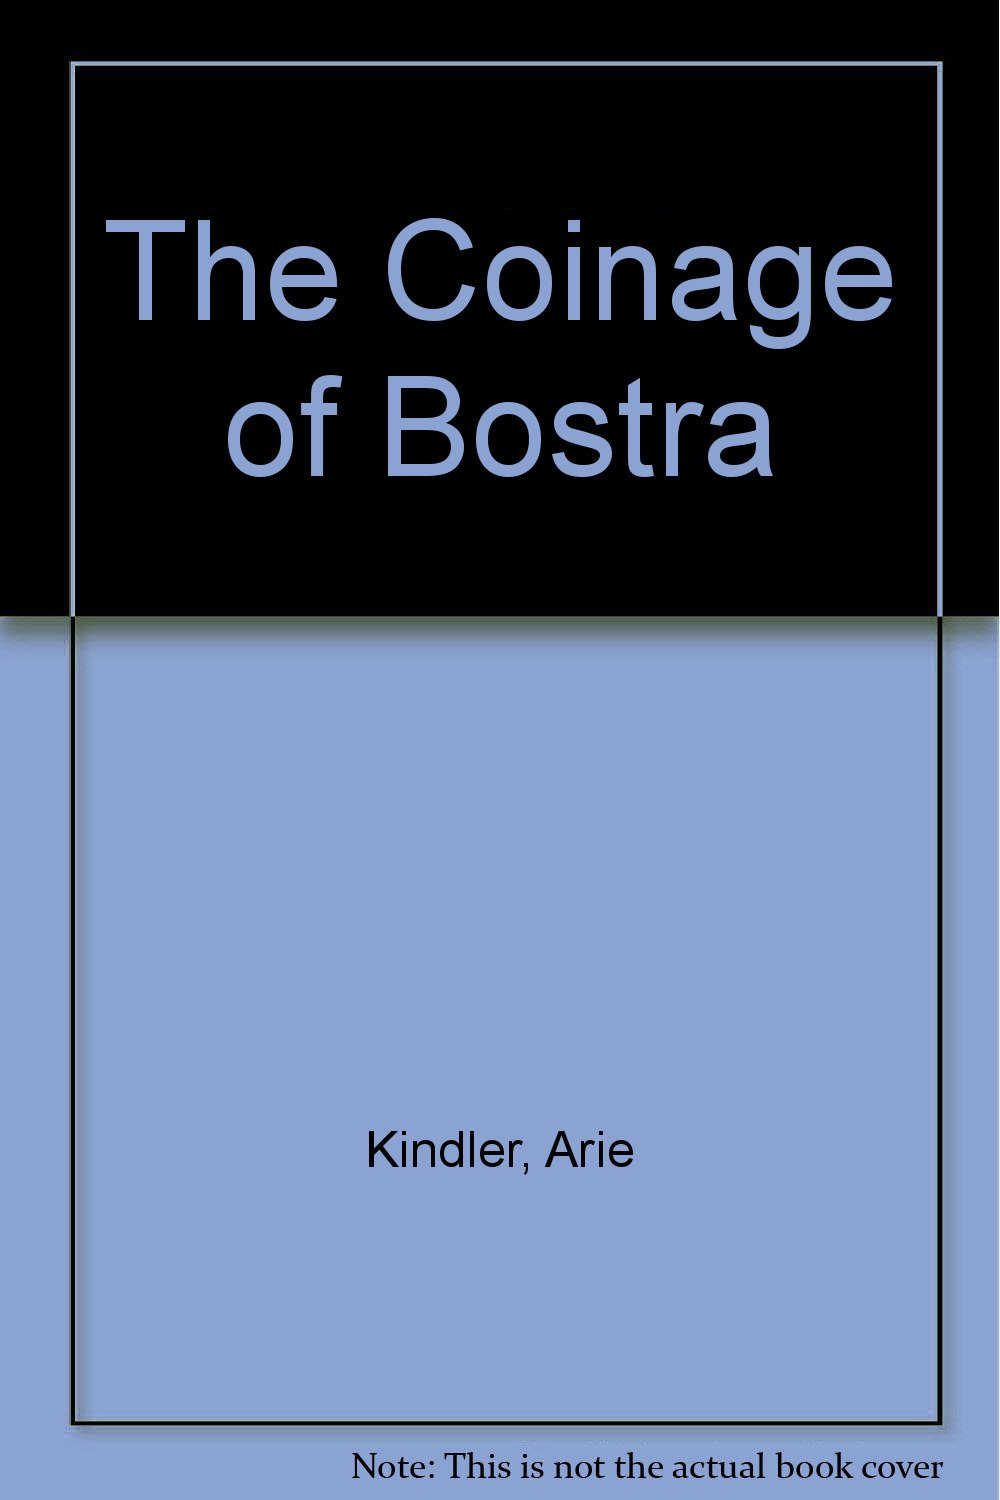 The Coinage of Bostra